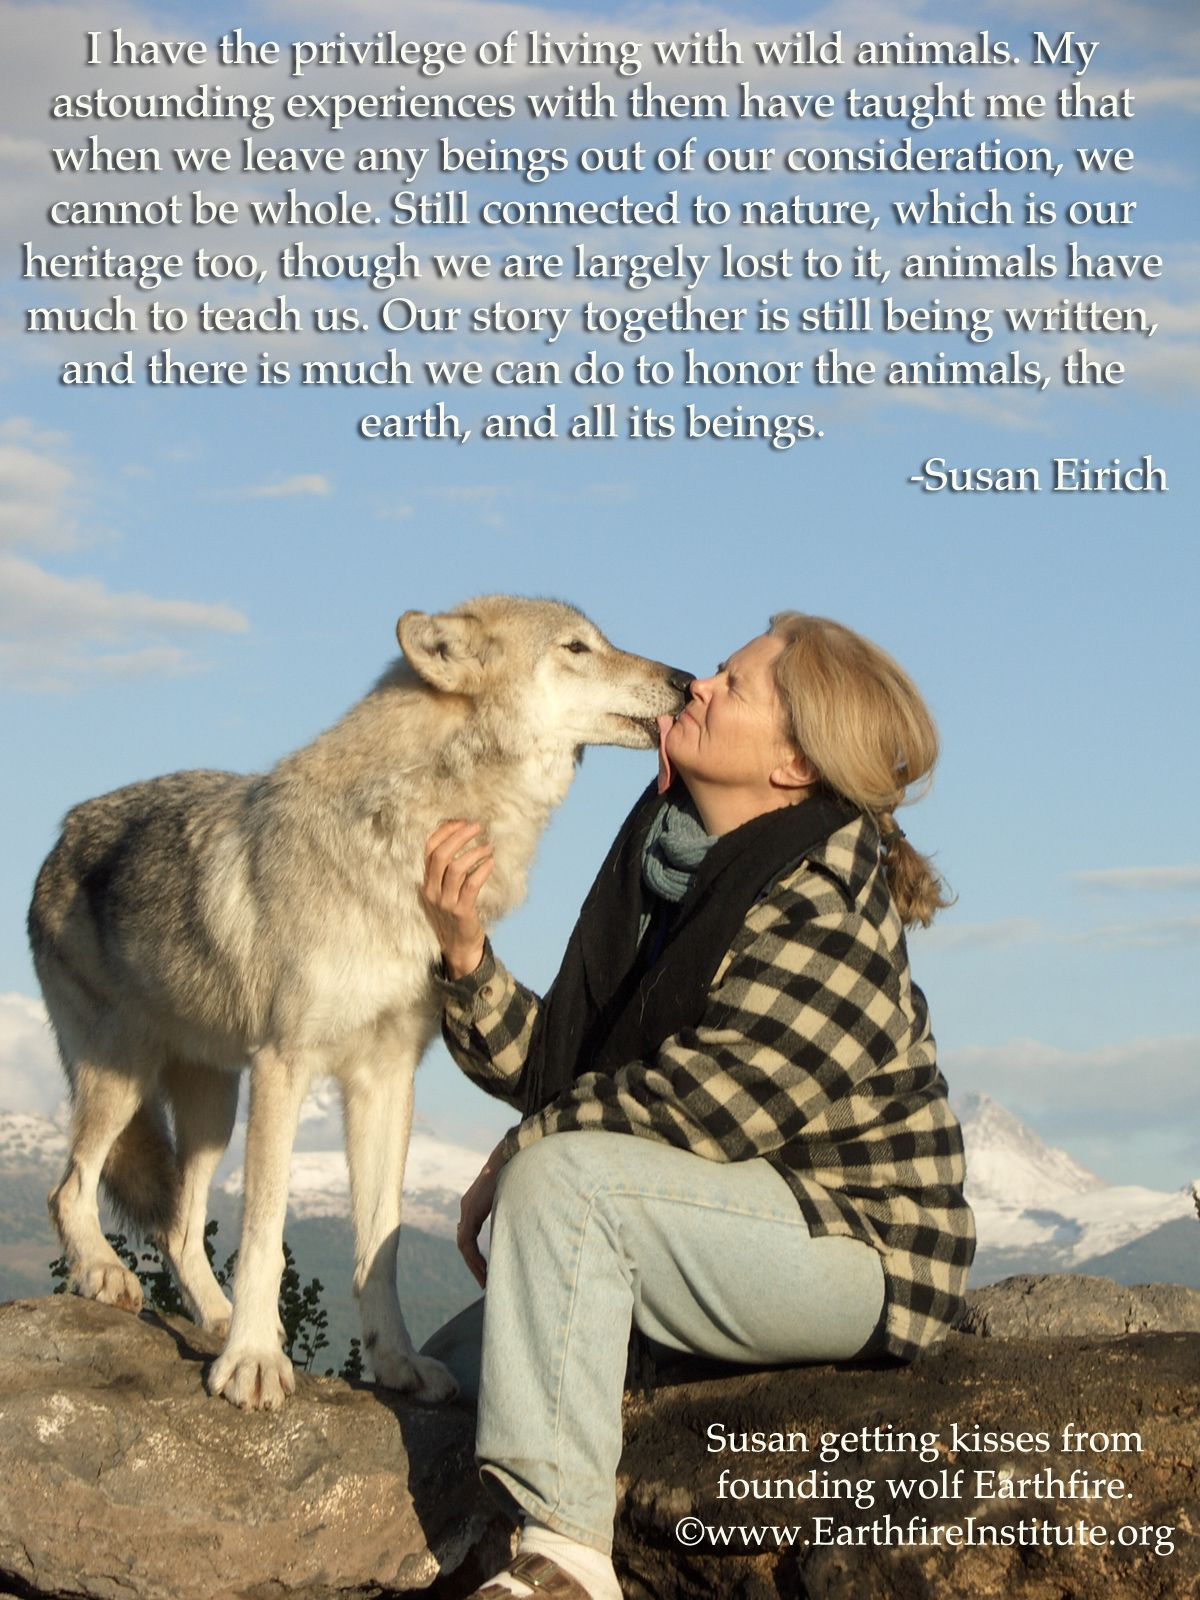 Wolf kisses are the best.